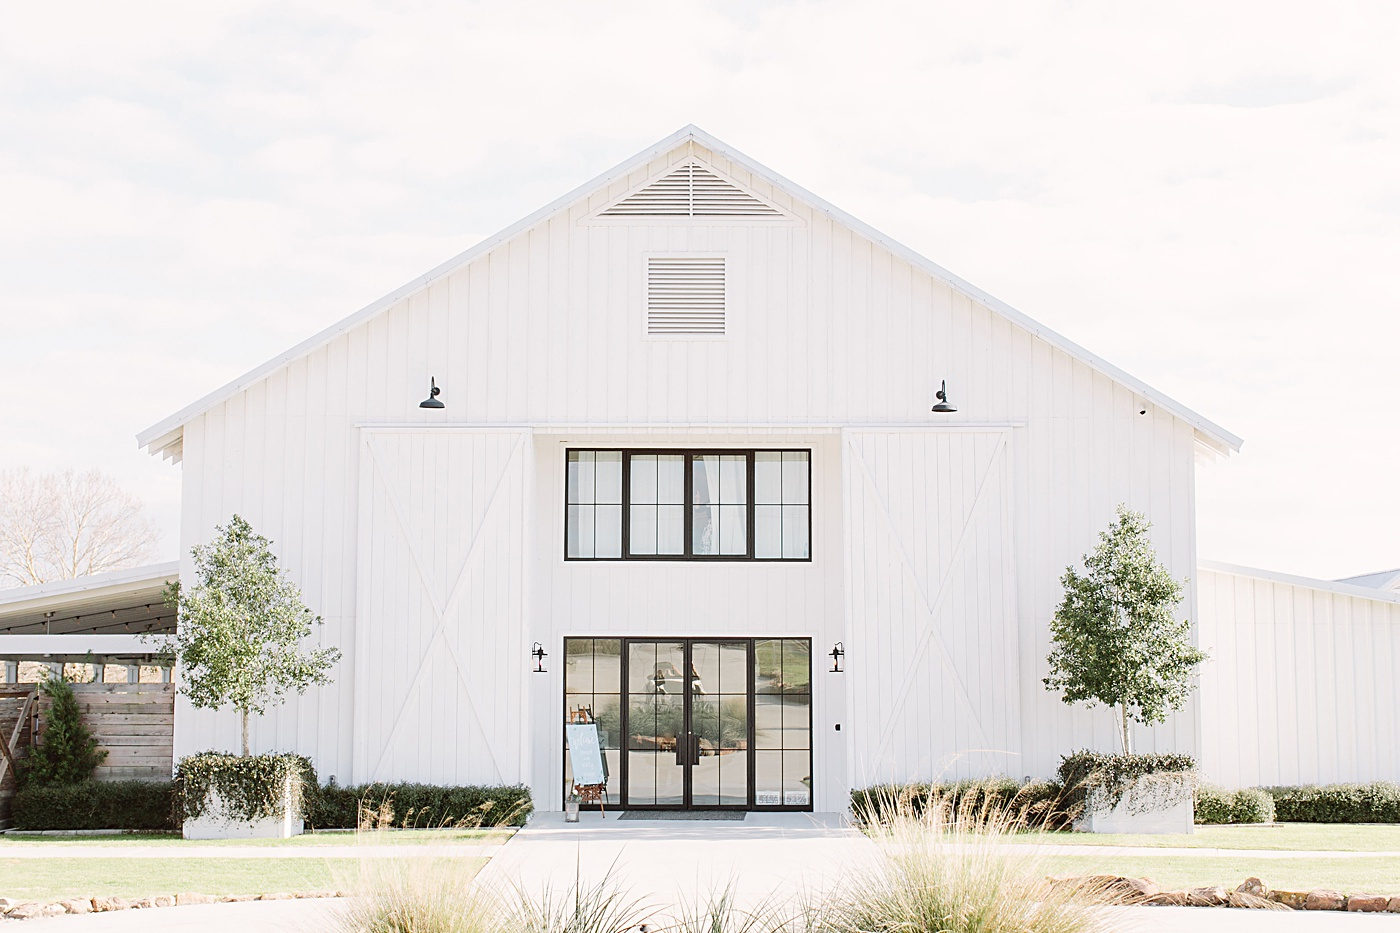 A clean white farmhouse with a glass door in a scenic setting of grassy fields.